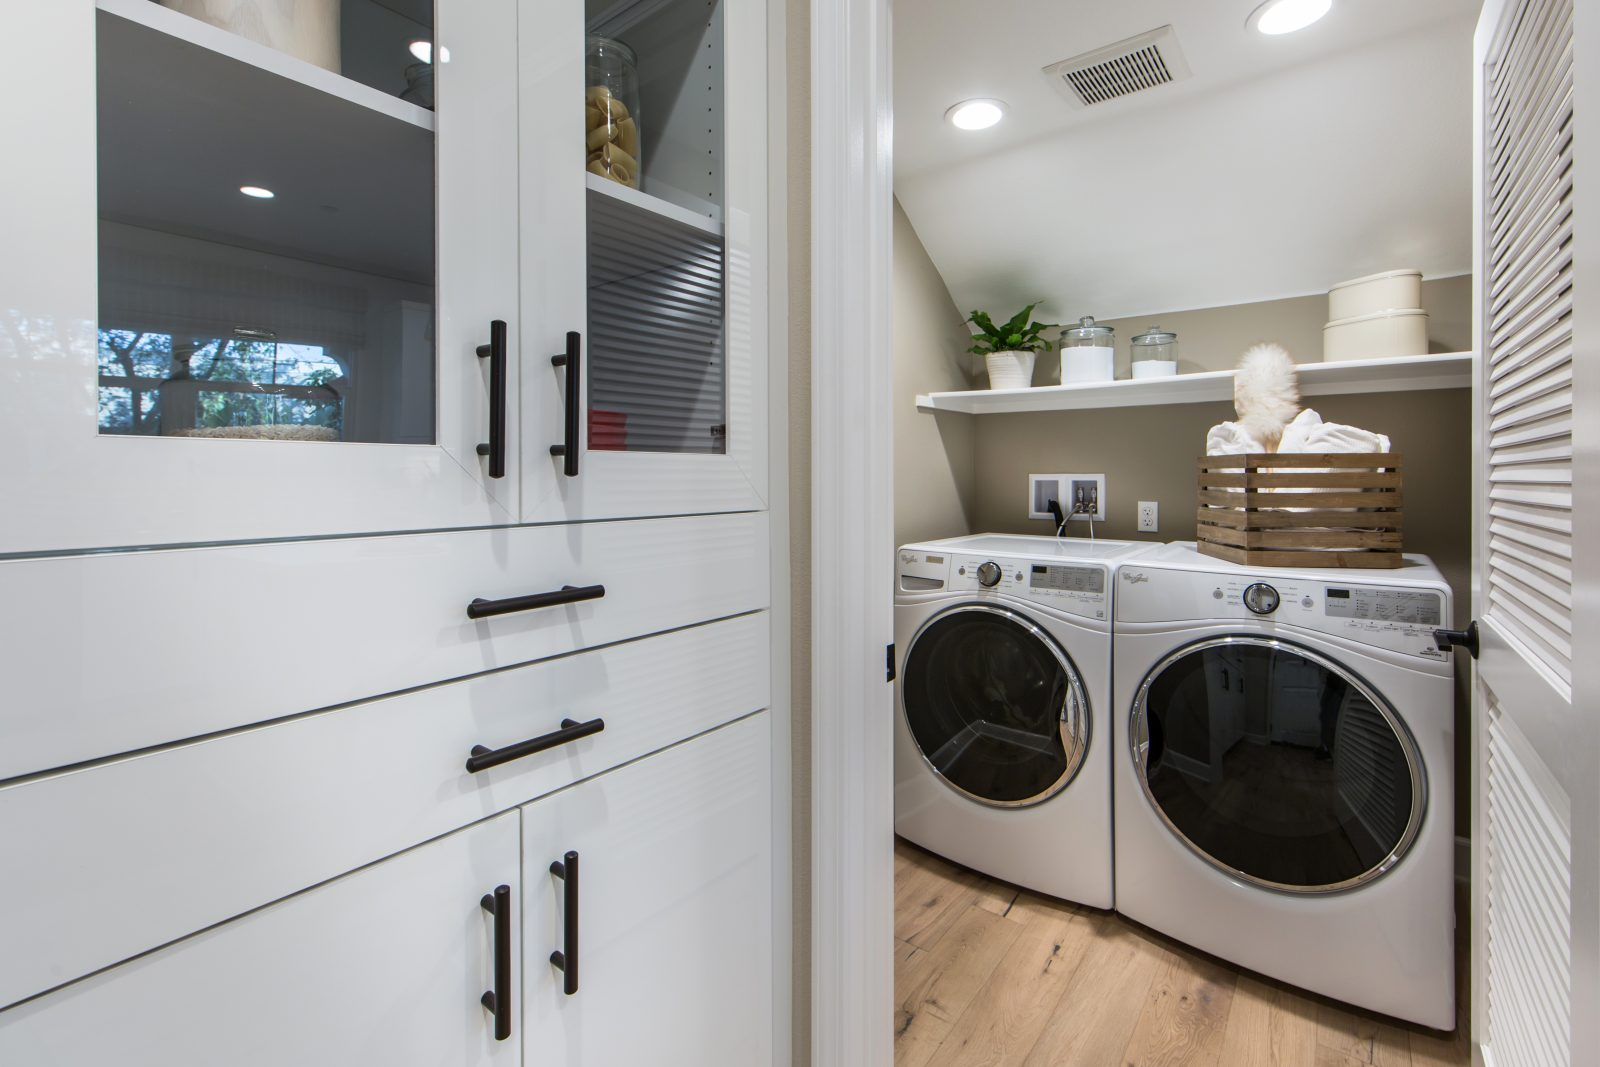 Laundry room cabinets irvine ca - 1 Of 8